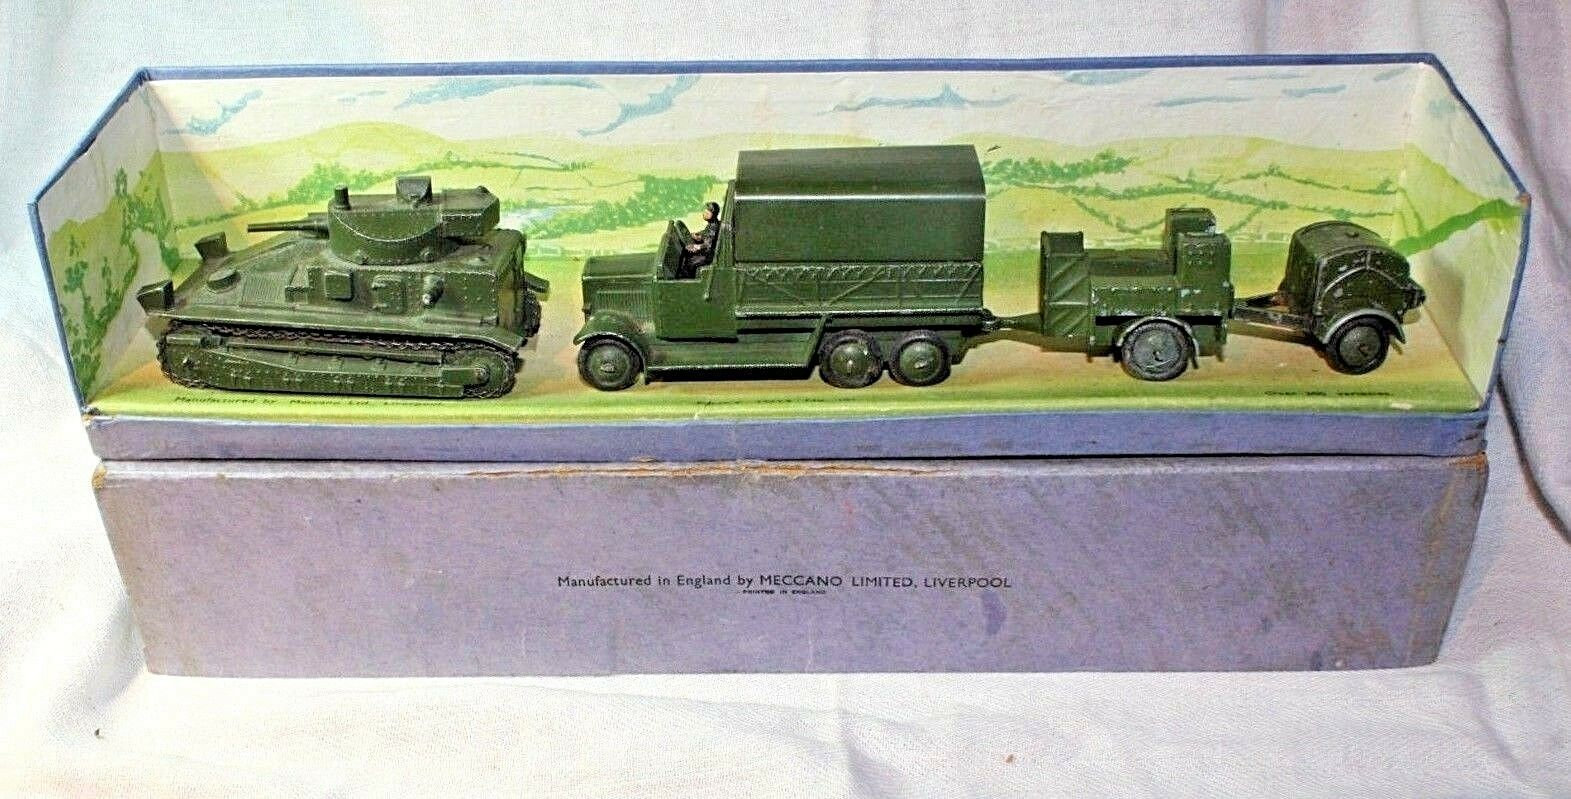 Dinky 151 Royal Tank Corps Medium Tank Set, Excellent in Original Box Pre War